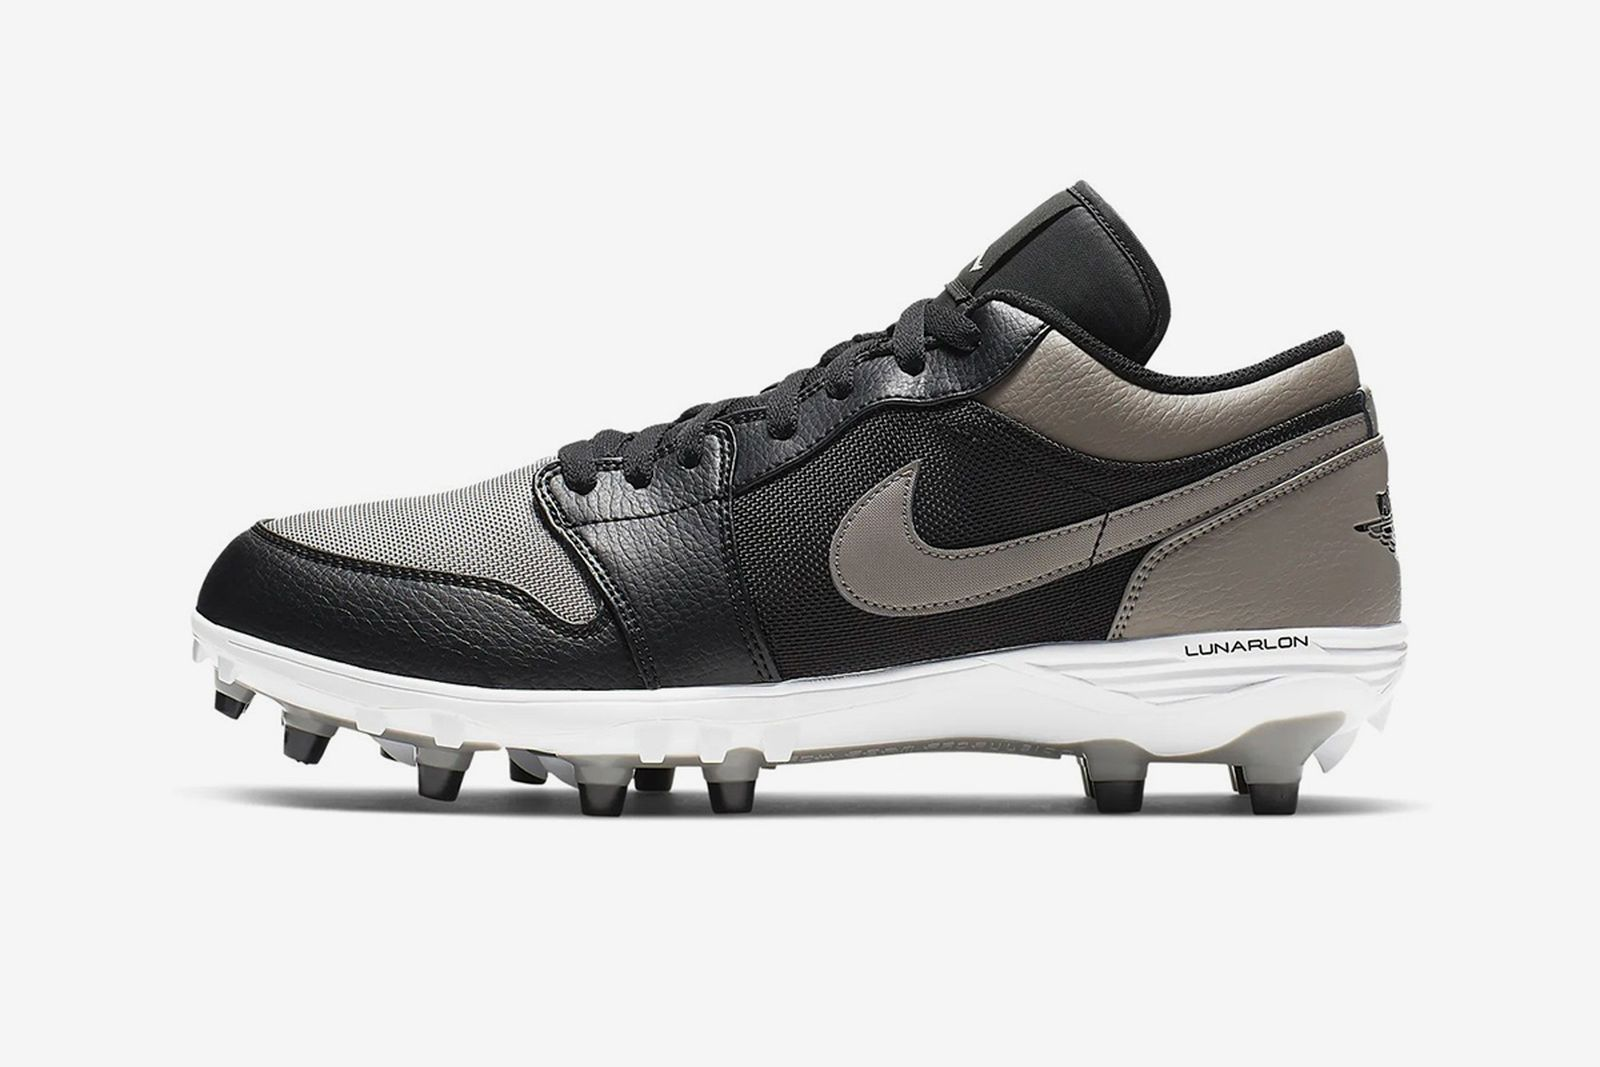 nike air jordan 1 football cleat buy here jordan brand